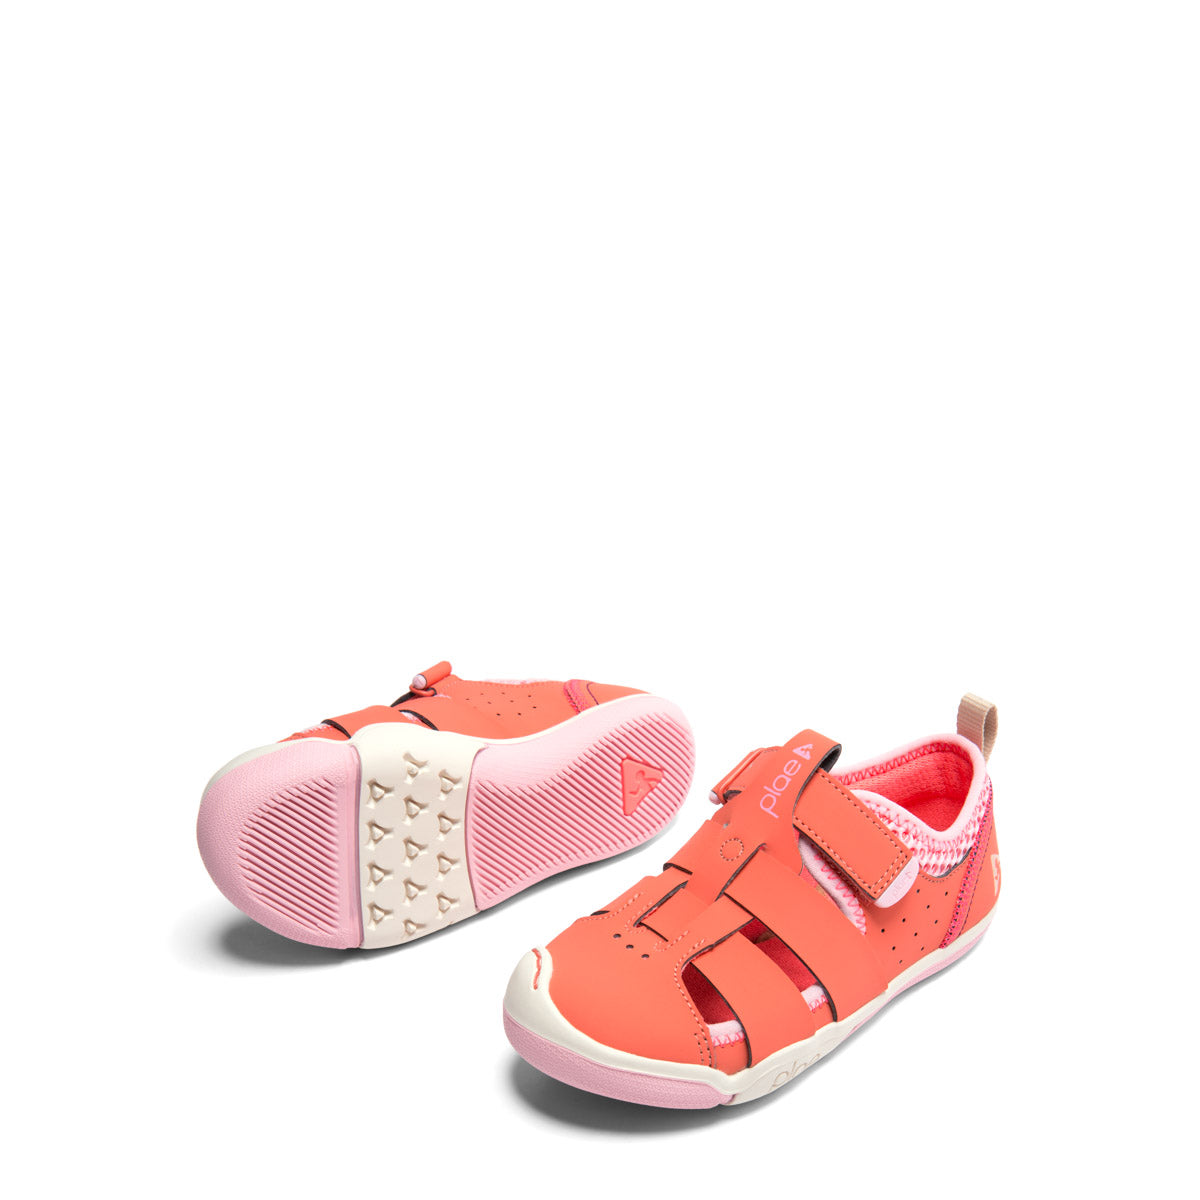 Sam Fisherman Sandal - Coralin